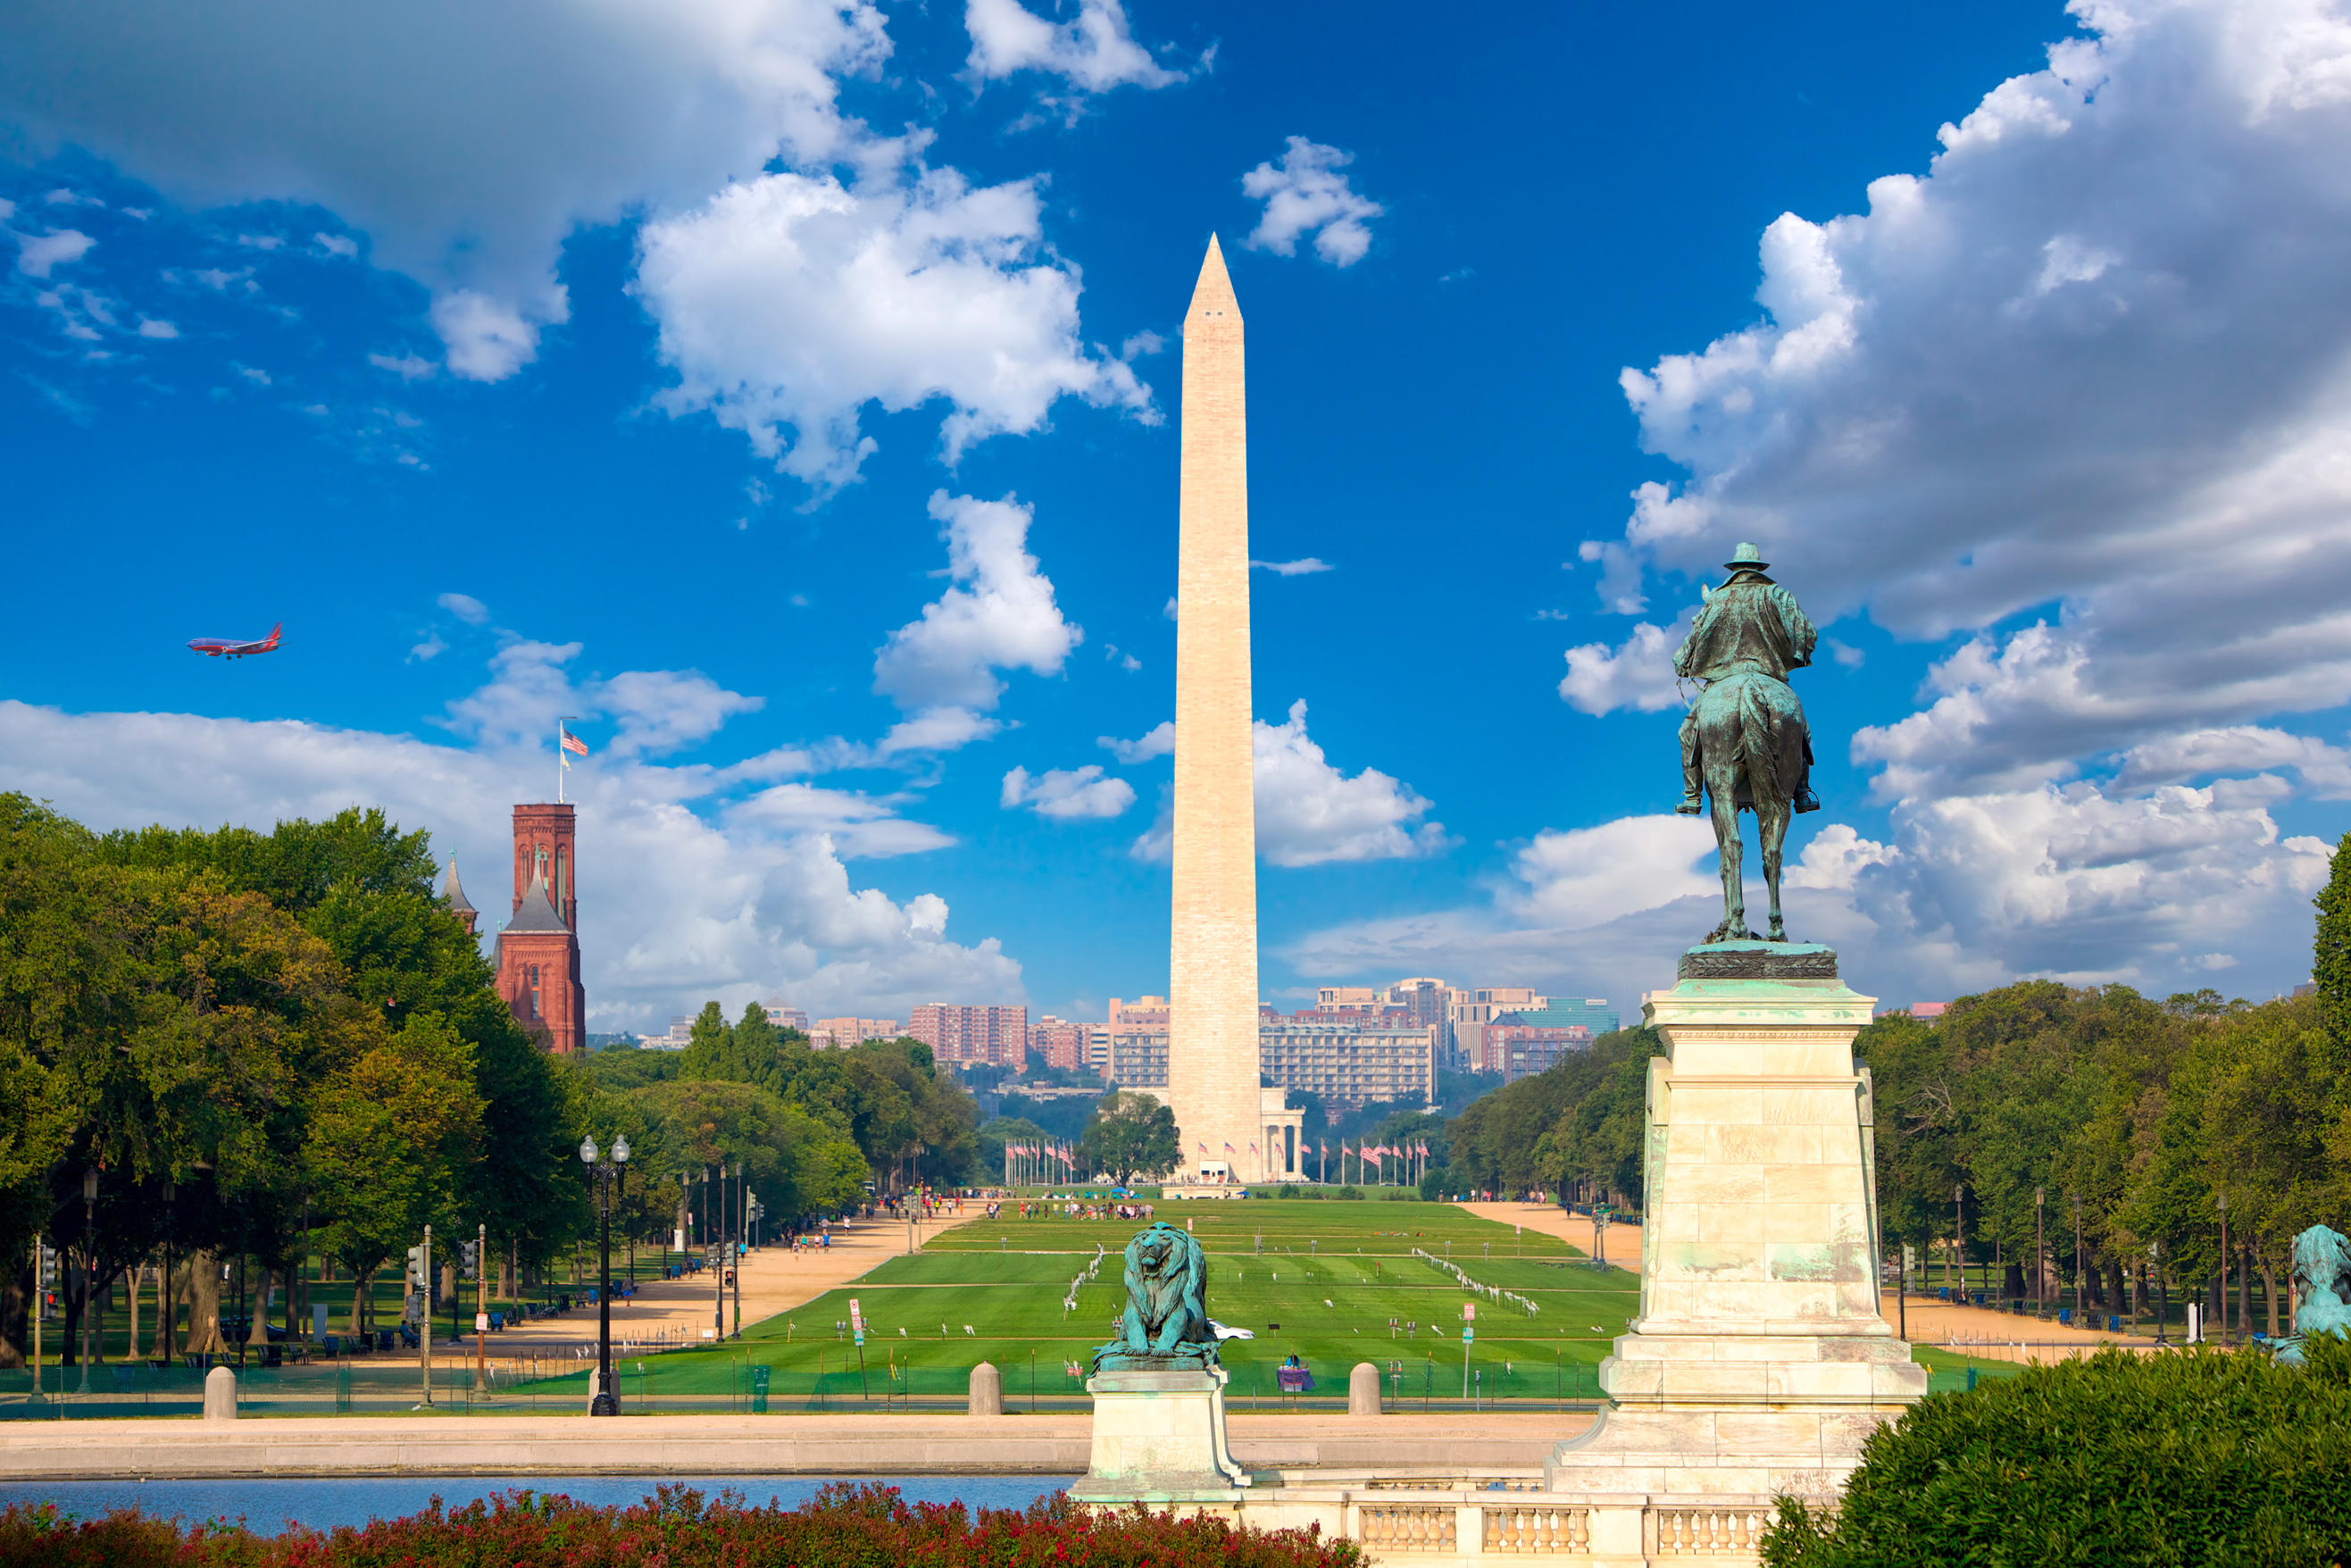 Getting to the National Mall